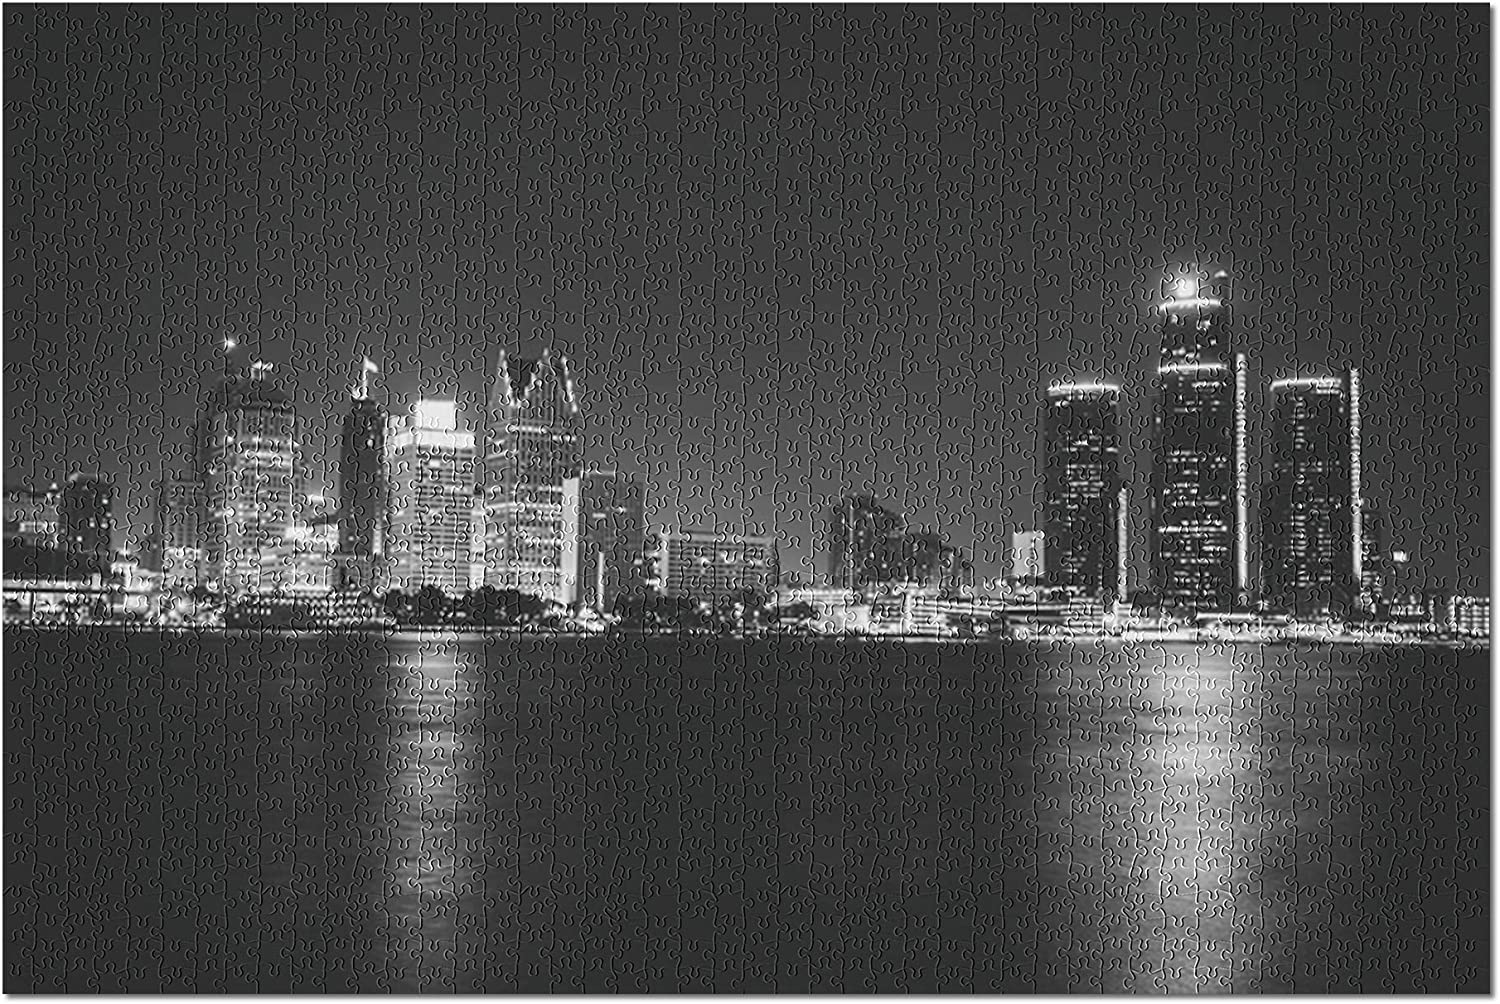 Detroit 10x15 FT Backdrop Photographers,Michigan Skyline at Twilight Waterfront Lively City Serene Calm Travel Destination Background for Party Home Decor Outdoorsy Theme Vinyl Shoot Props Multicolor